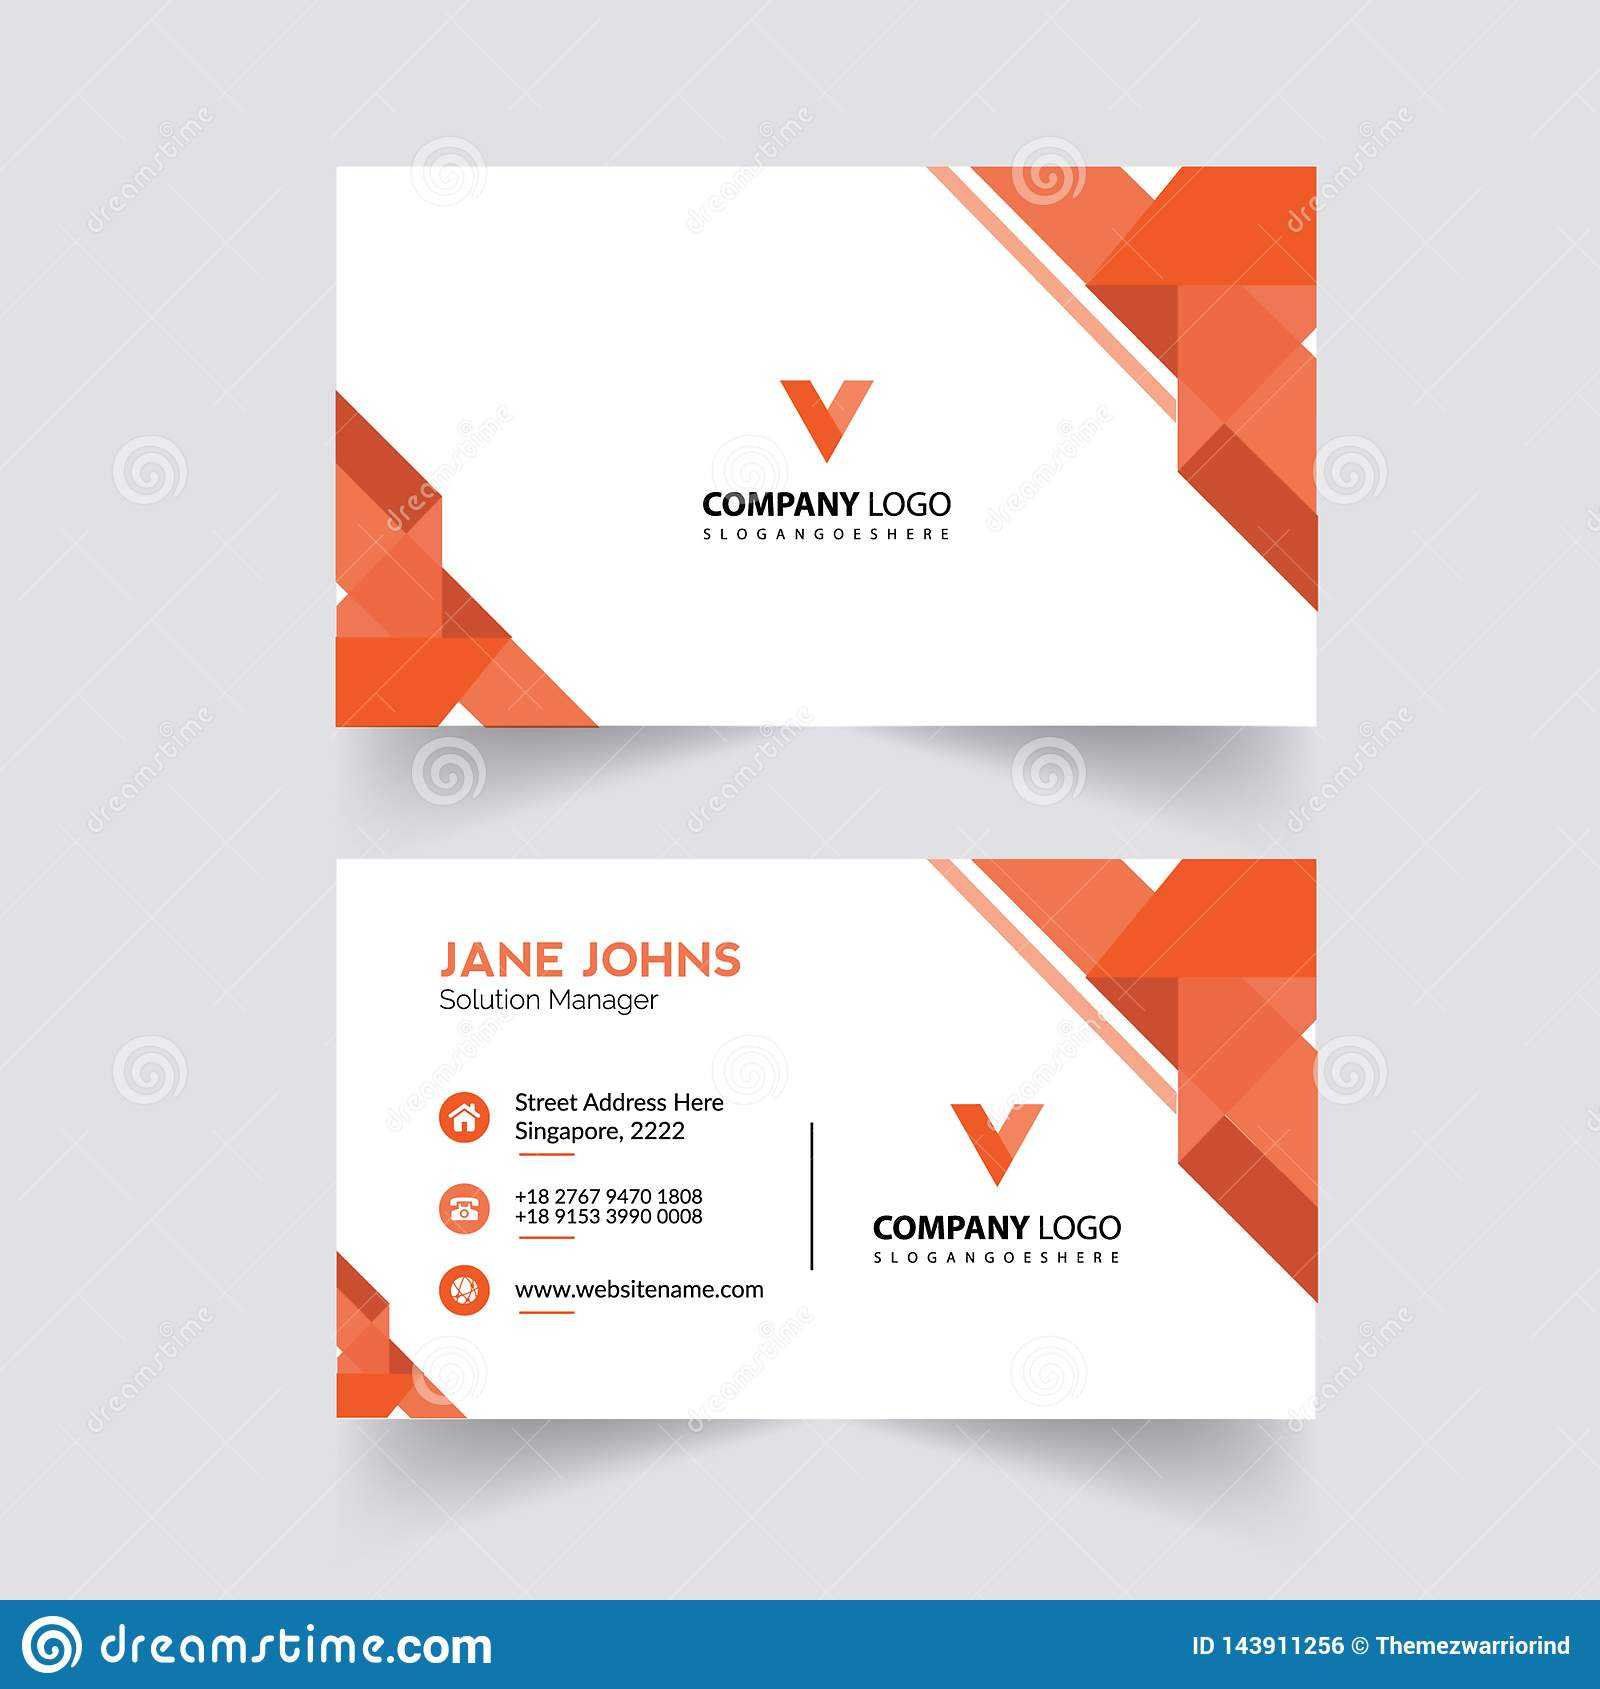 Abstruct Business Card Template Stock Illustration Inside Adobe Illustrator Business Card Template